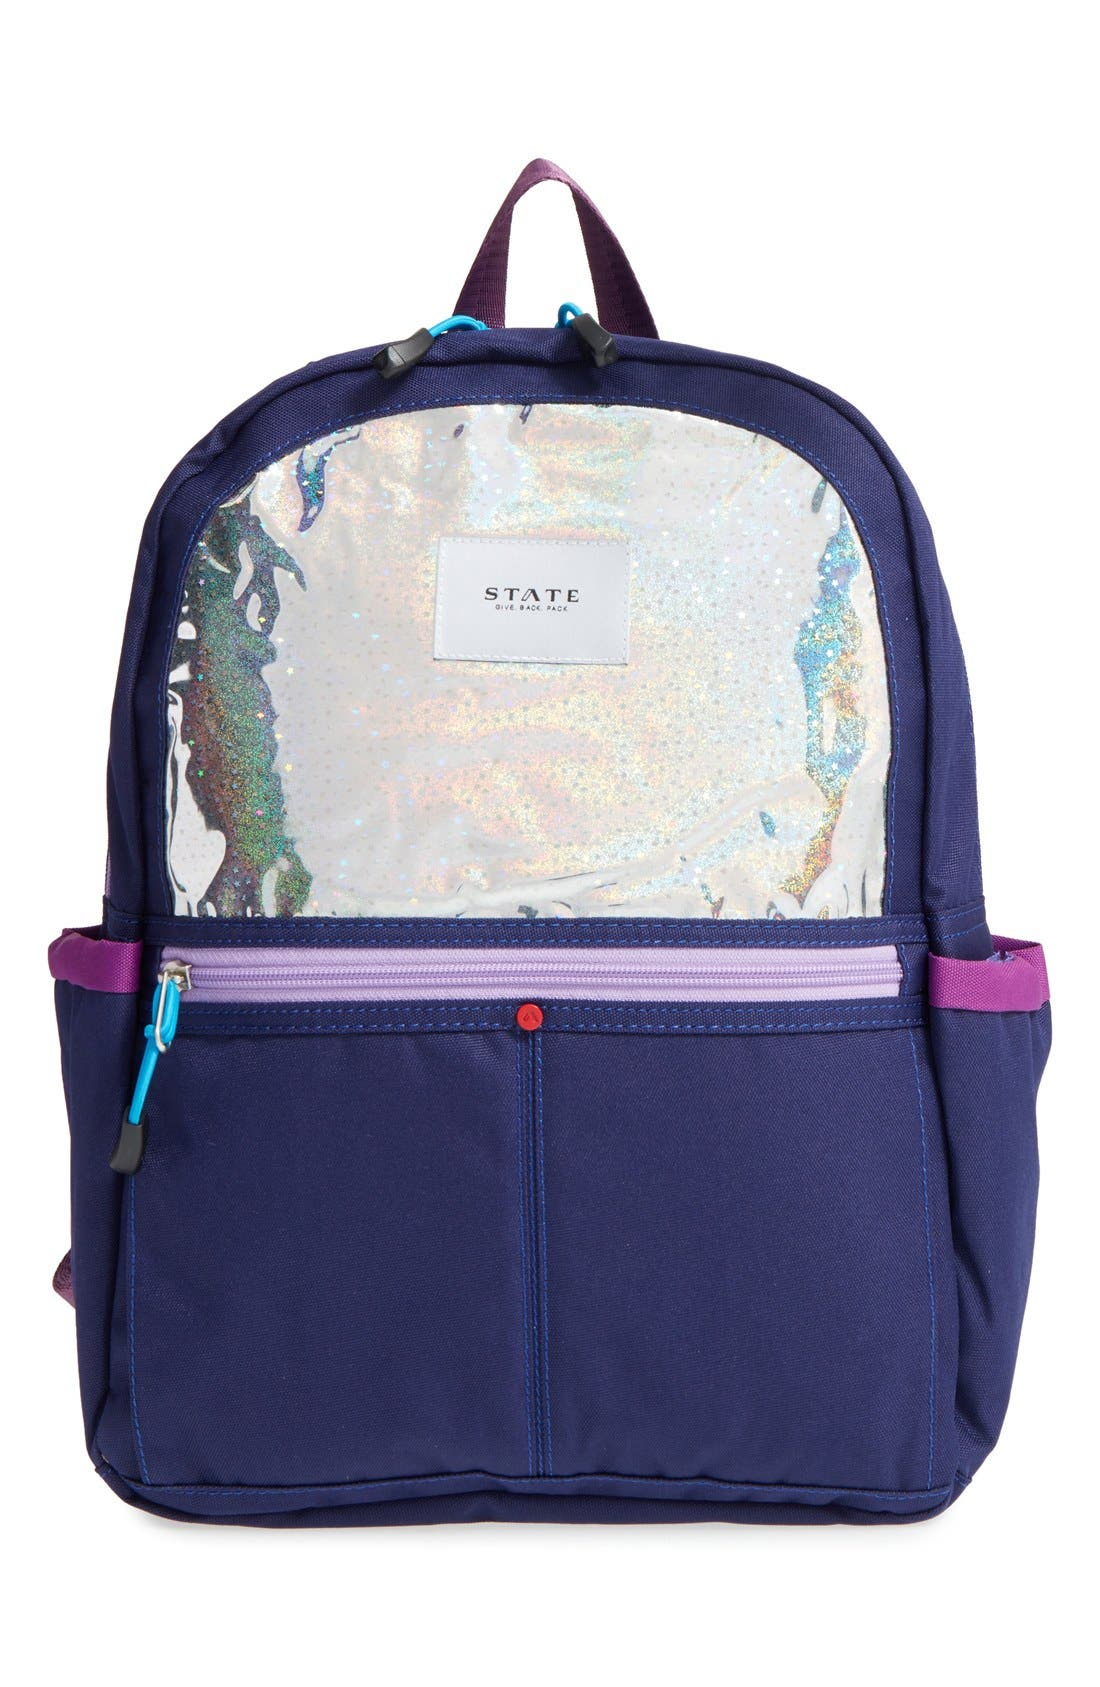 STATE BAGS 'Kane' Backpack, Main, color, 500